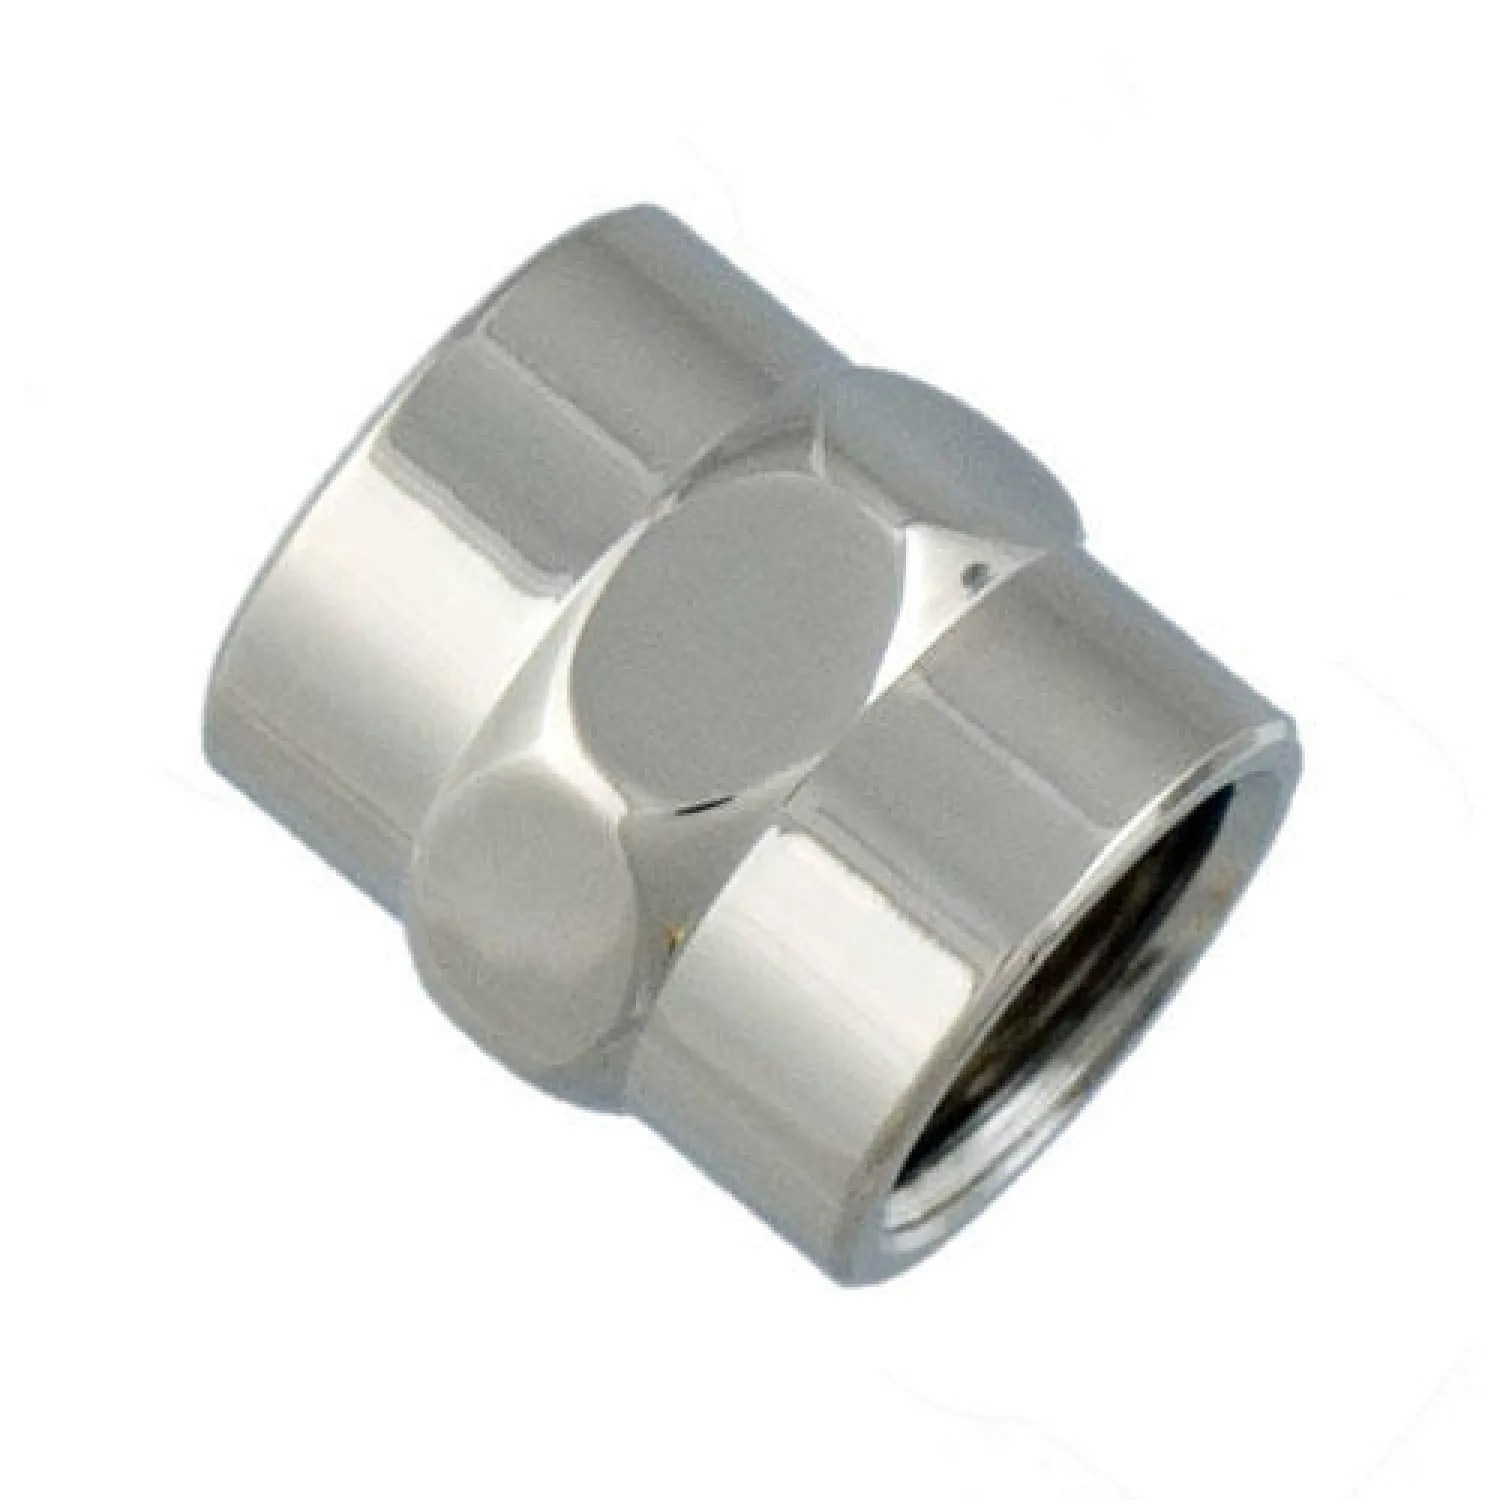 Solid Brass Decorative Pipe Coupling 12 IPS Bathroom